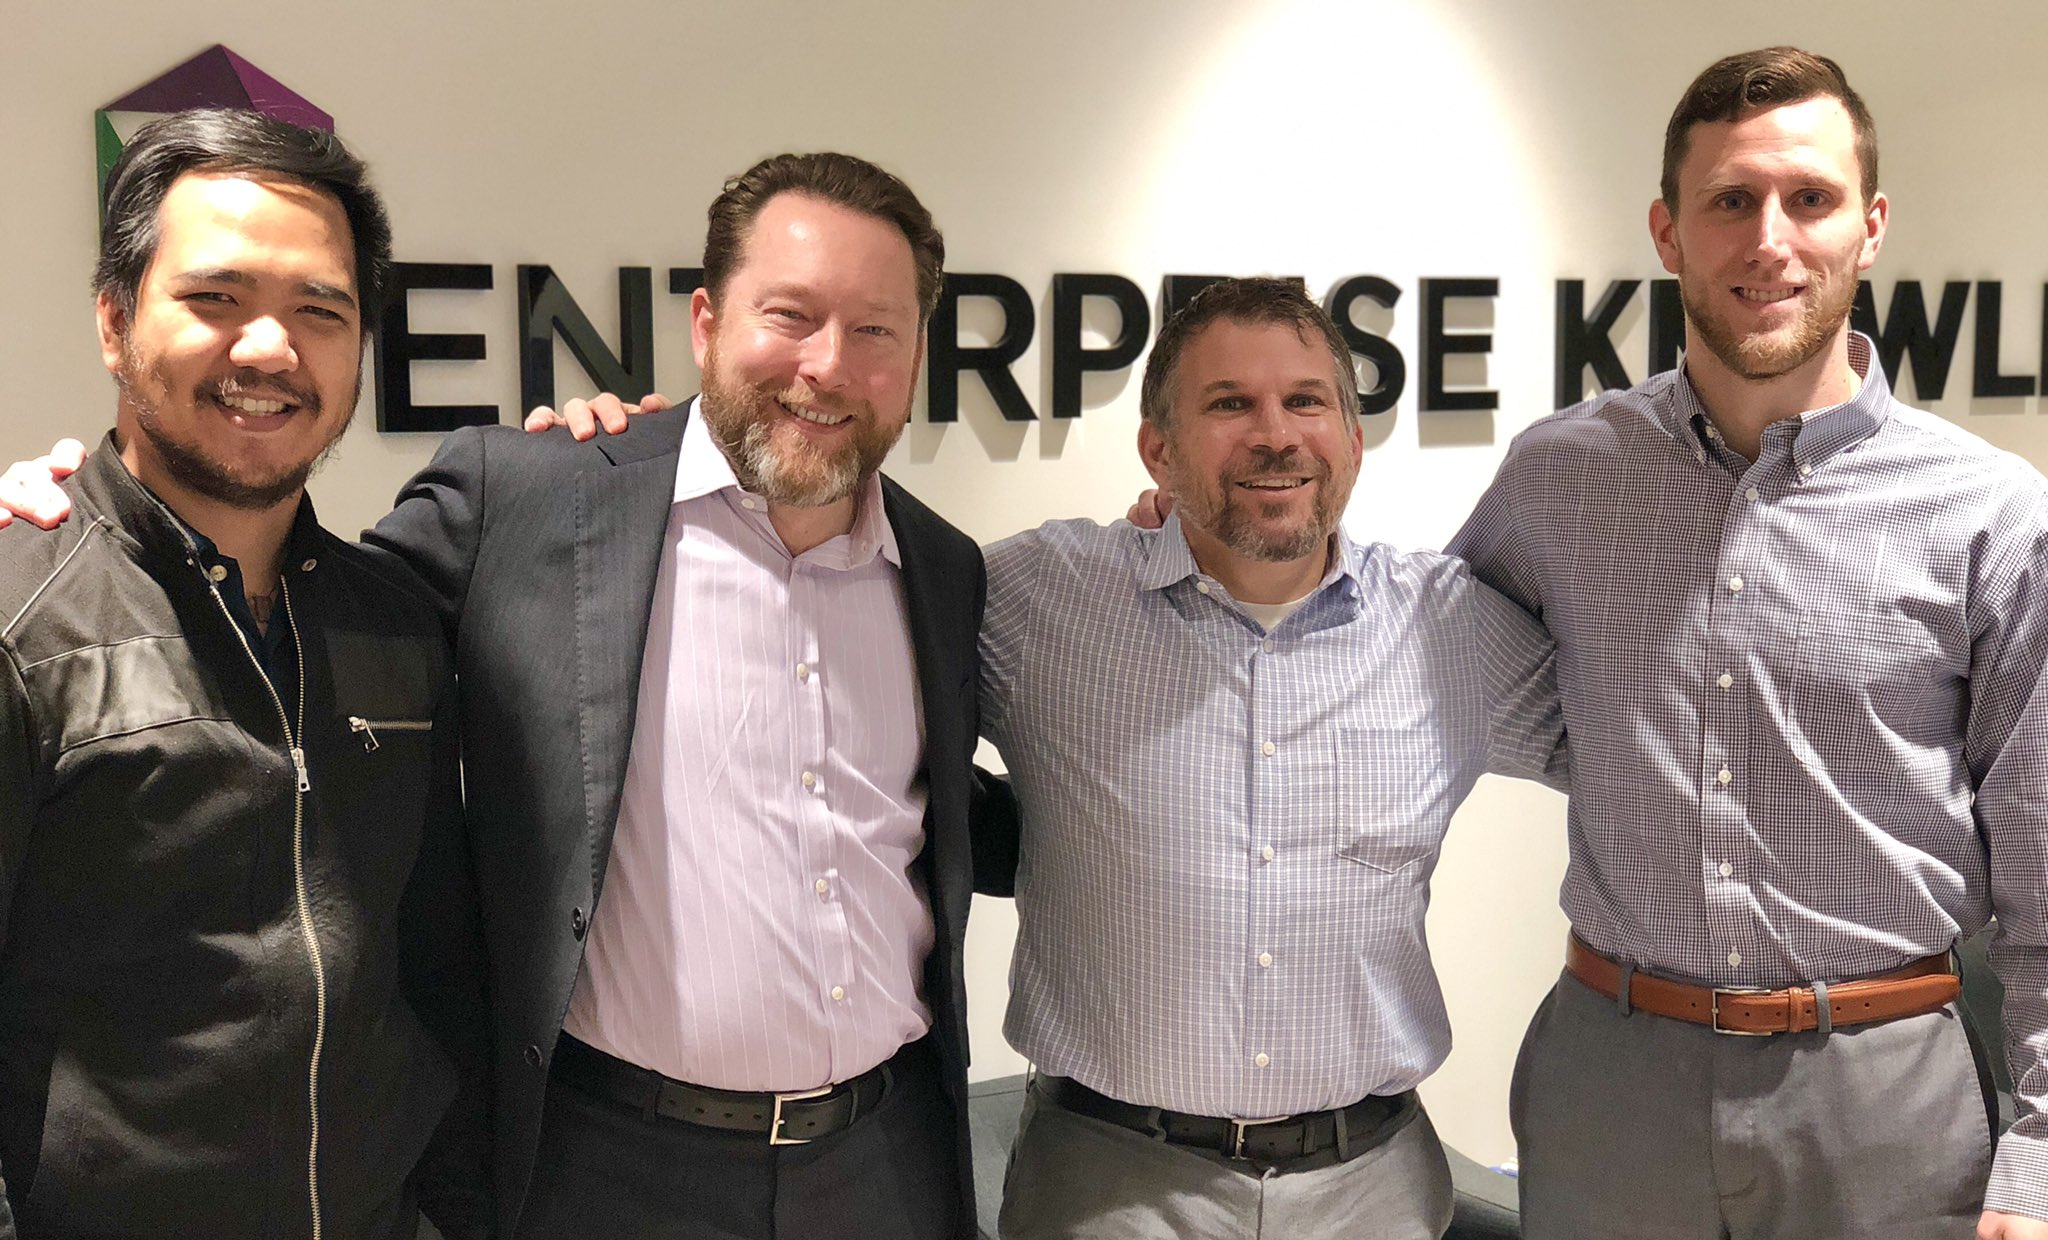 Four EK Employees who participated in No Shave November.